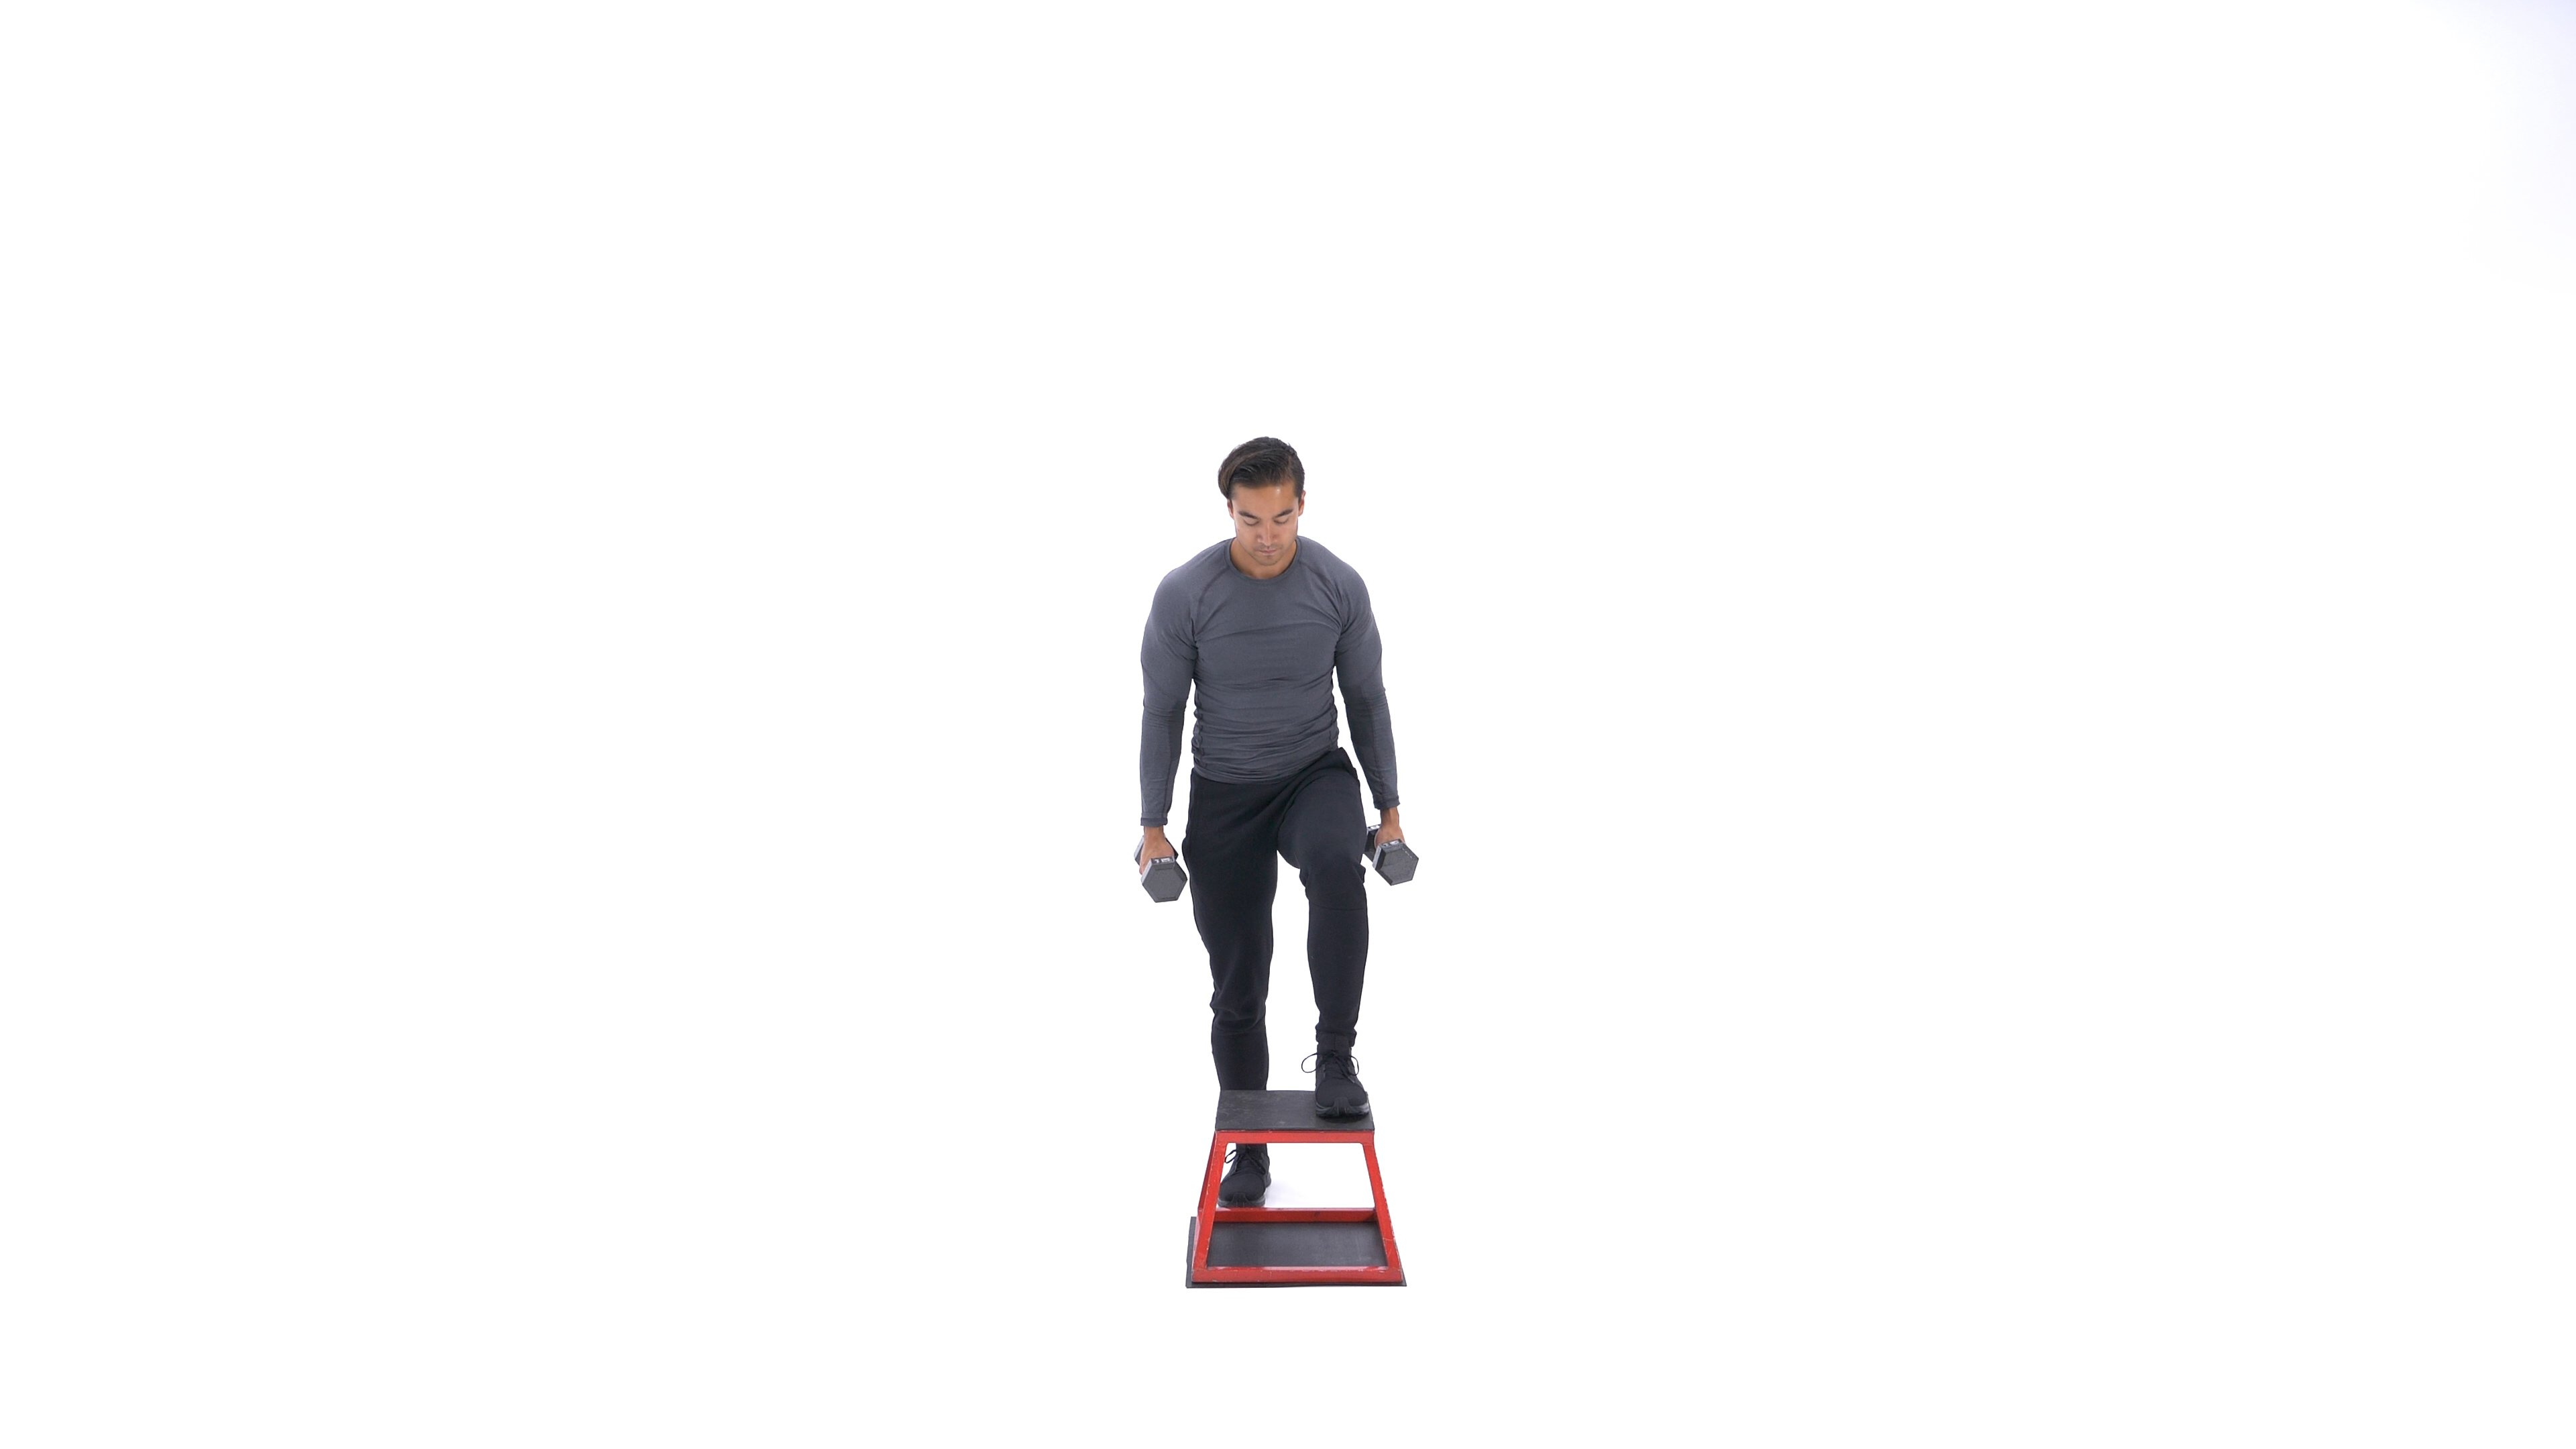 Dumbbell step-up image